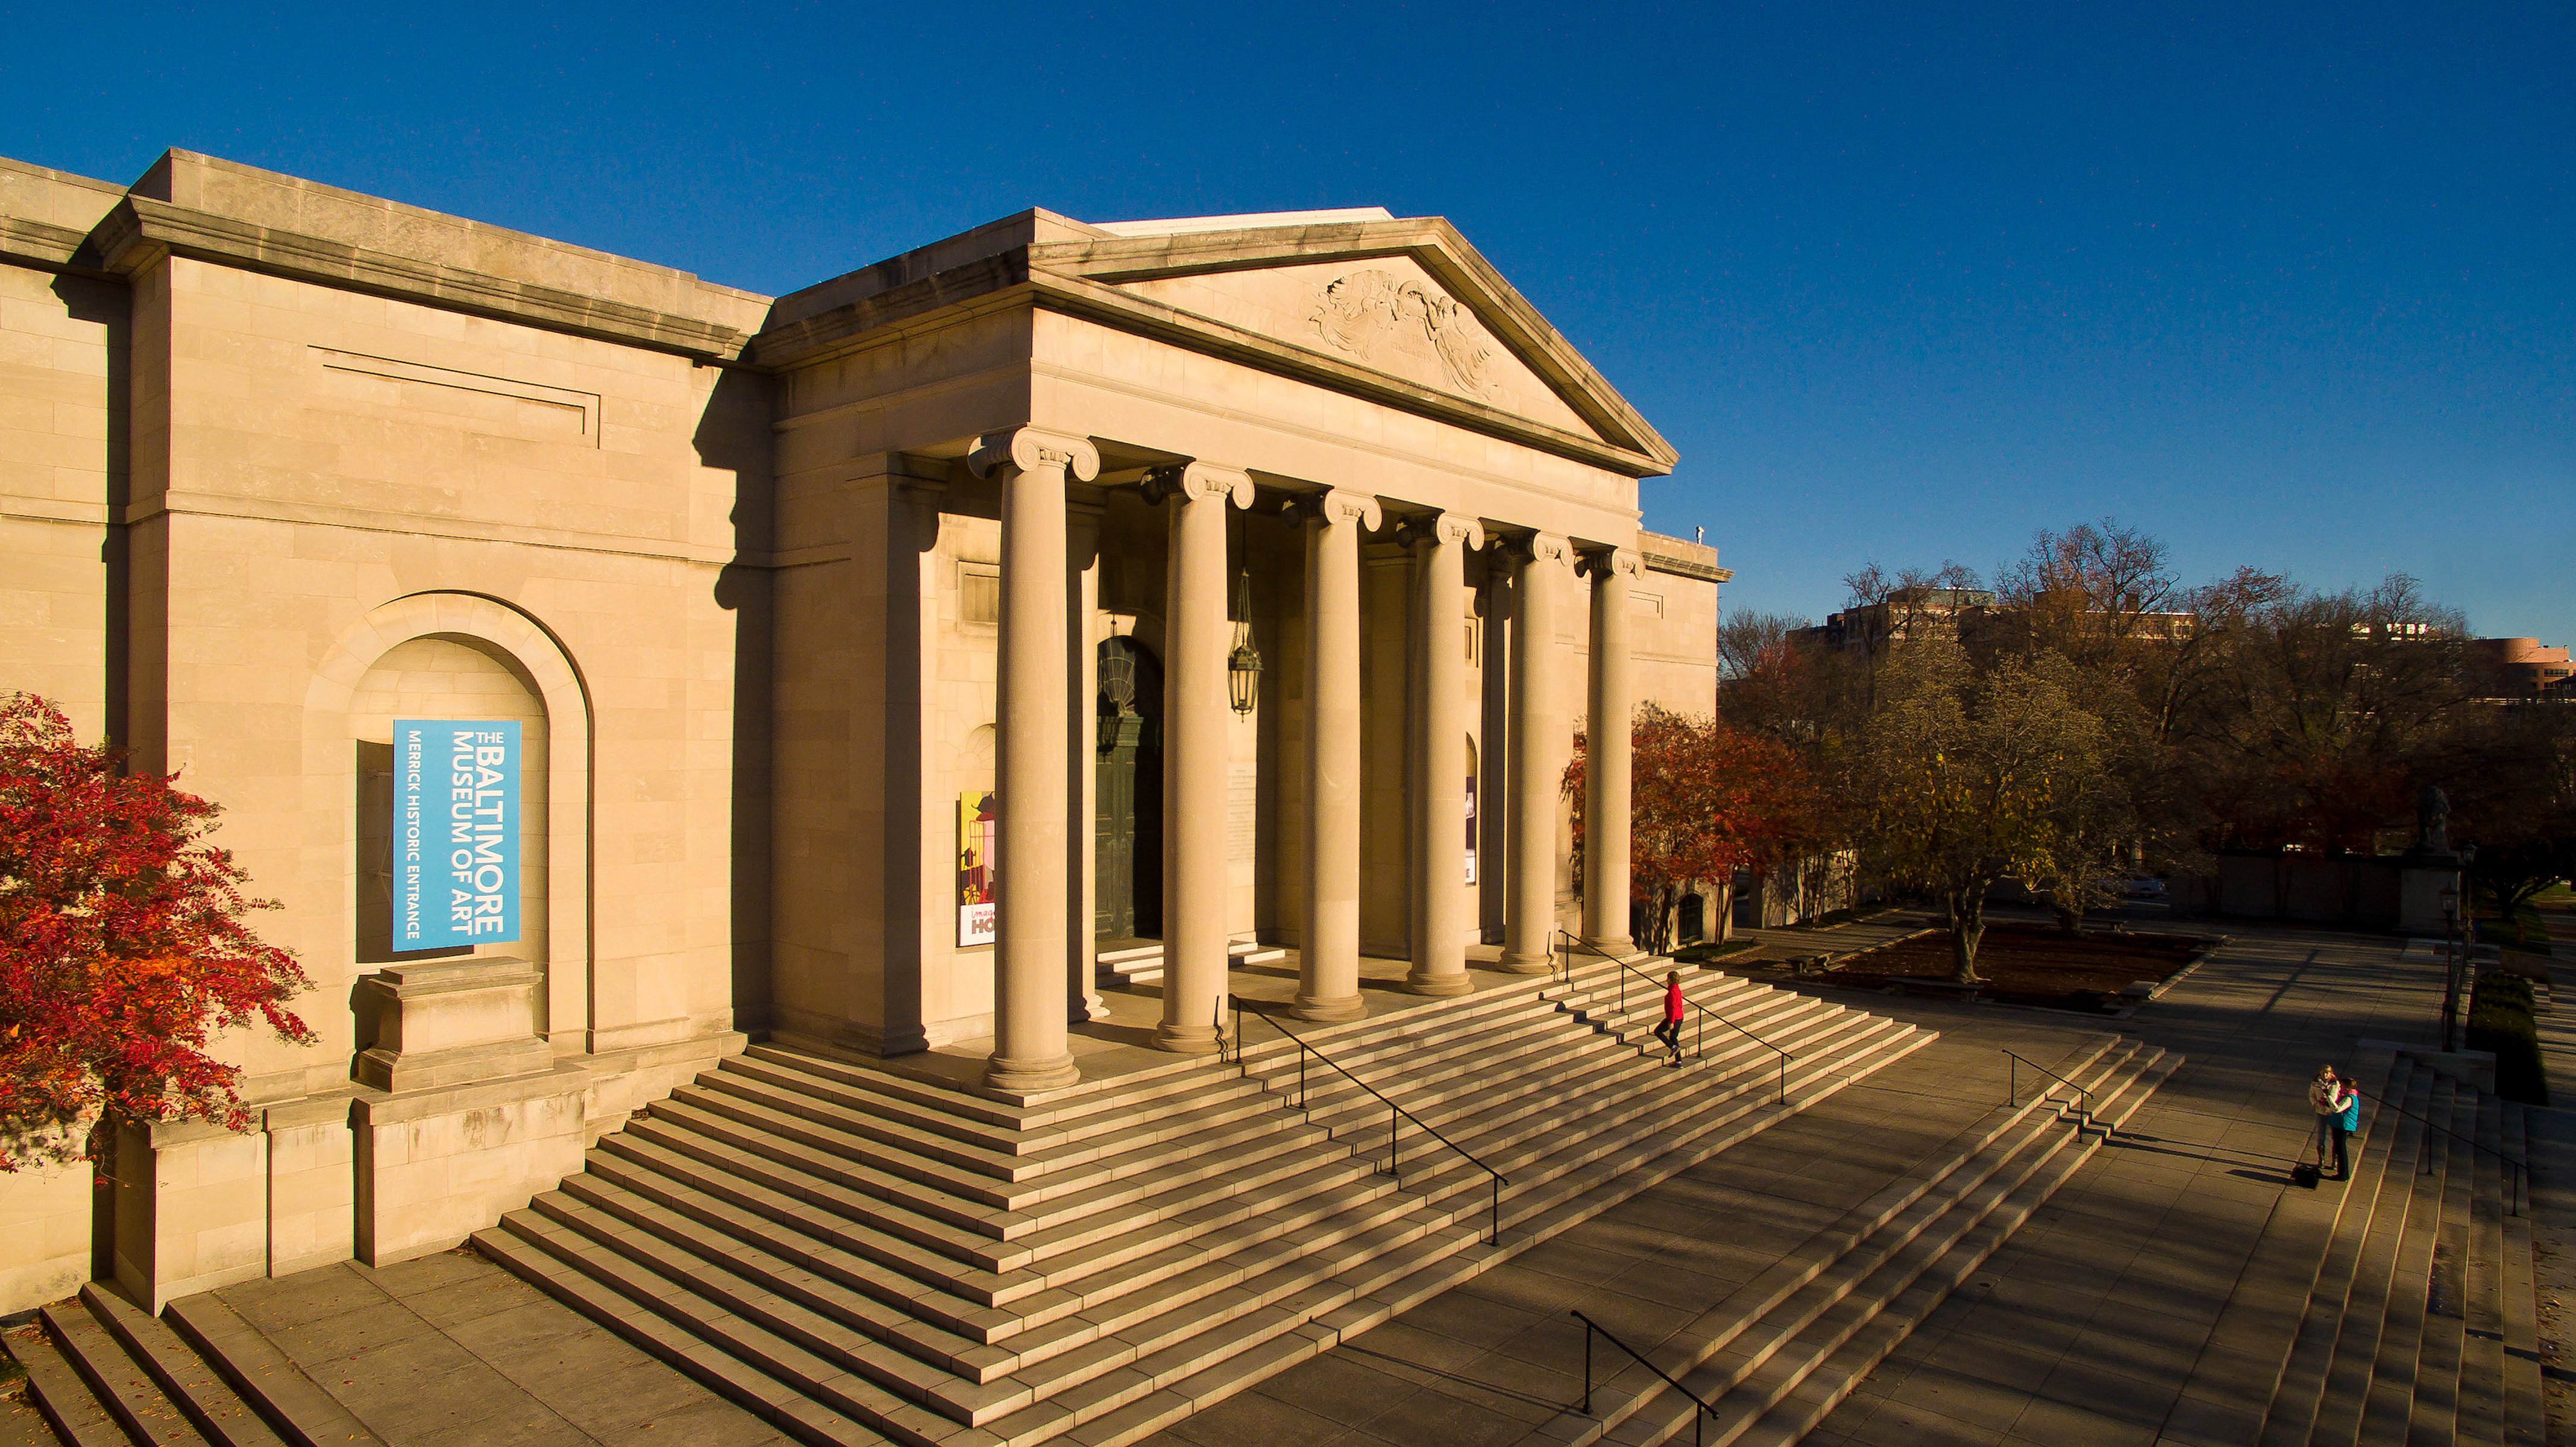 Crowdsourcing the Museum? The Baltimore Museum of Art Is Issuing a Citywide Survey to Ask Locals What They Want to See